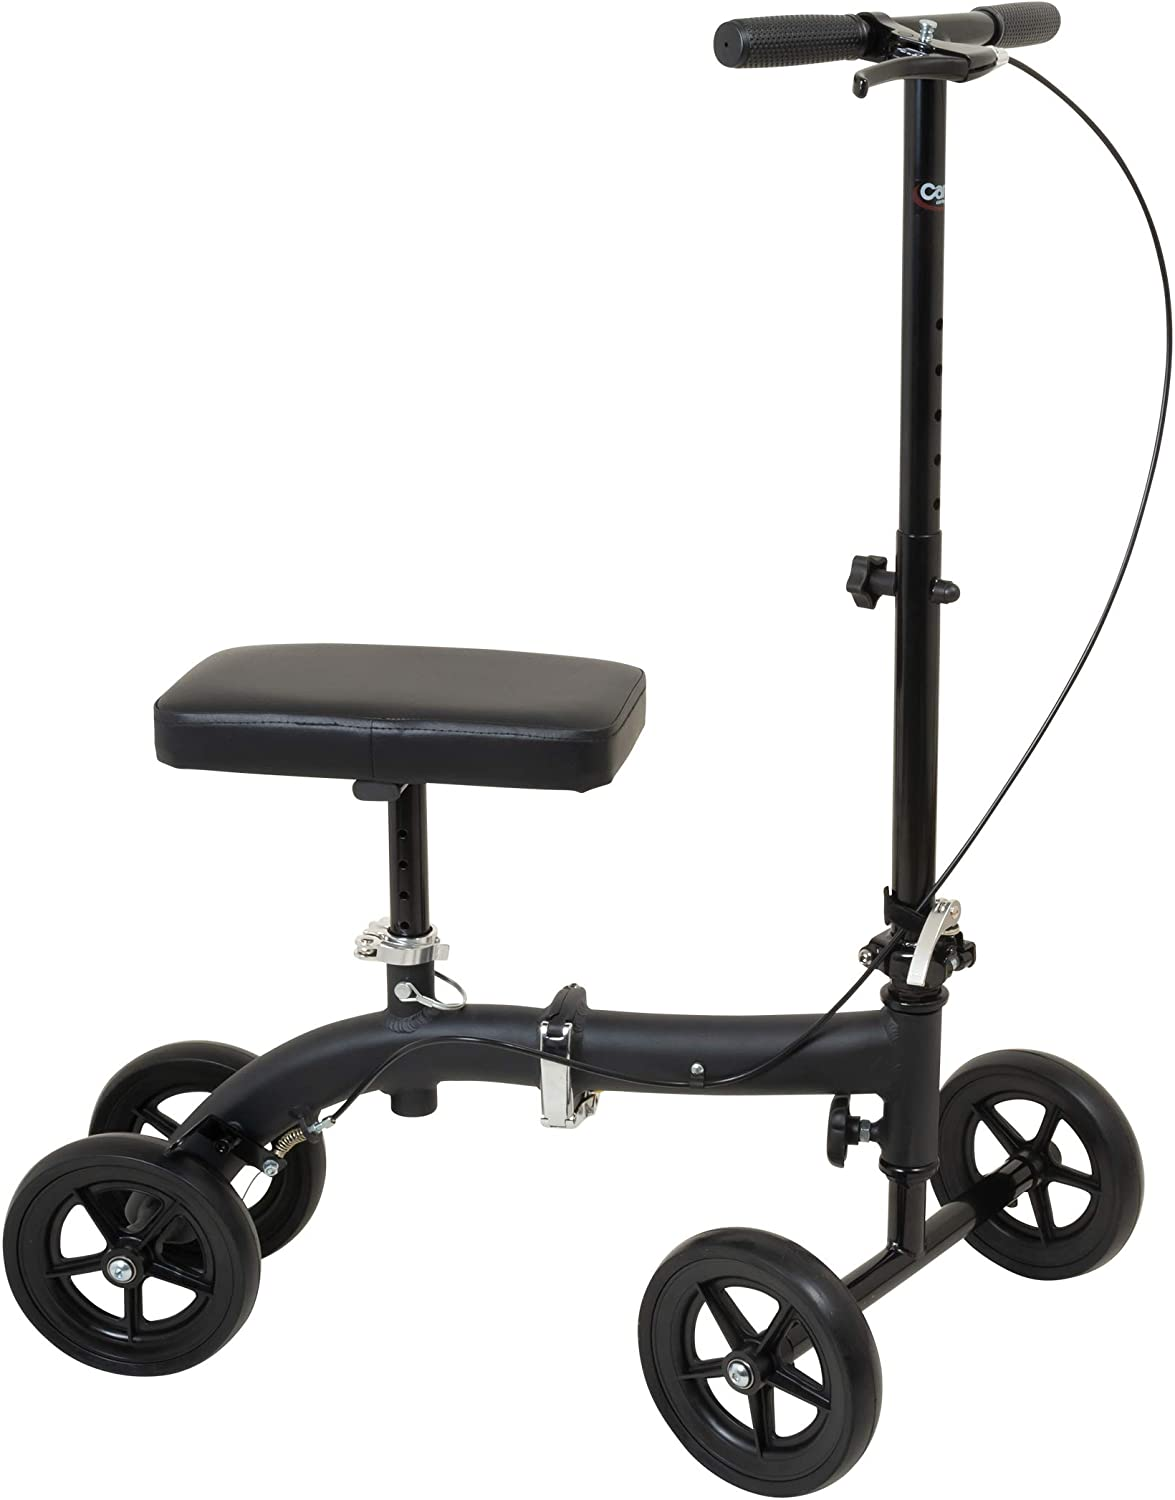 Carex Folding Knee Walker Scooter - Knee Scooter for Foot Injuries, Ankle Injuries, Broken Foot - Medical Scooter for Foot Surgery 71BQD82YgYLSL1500_